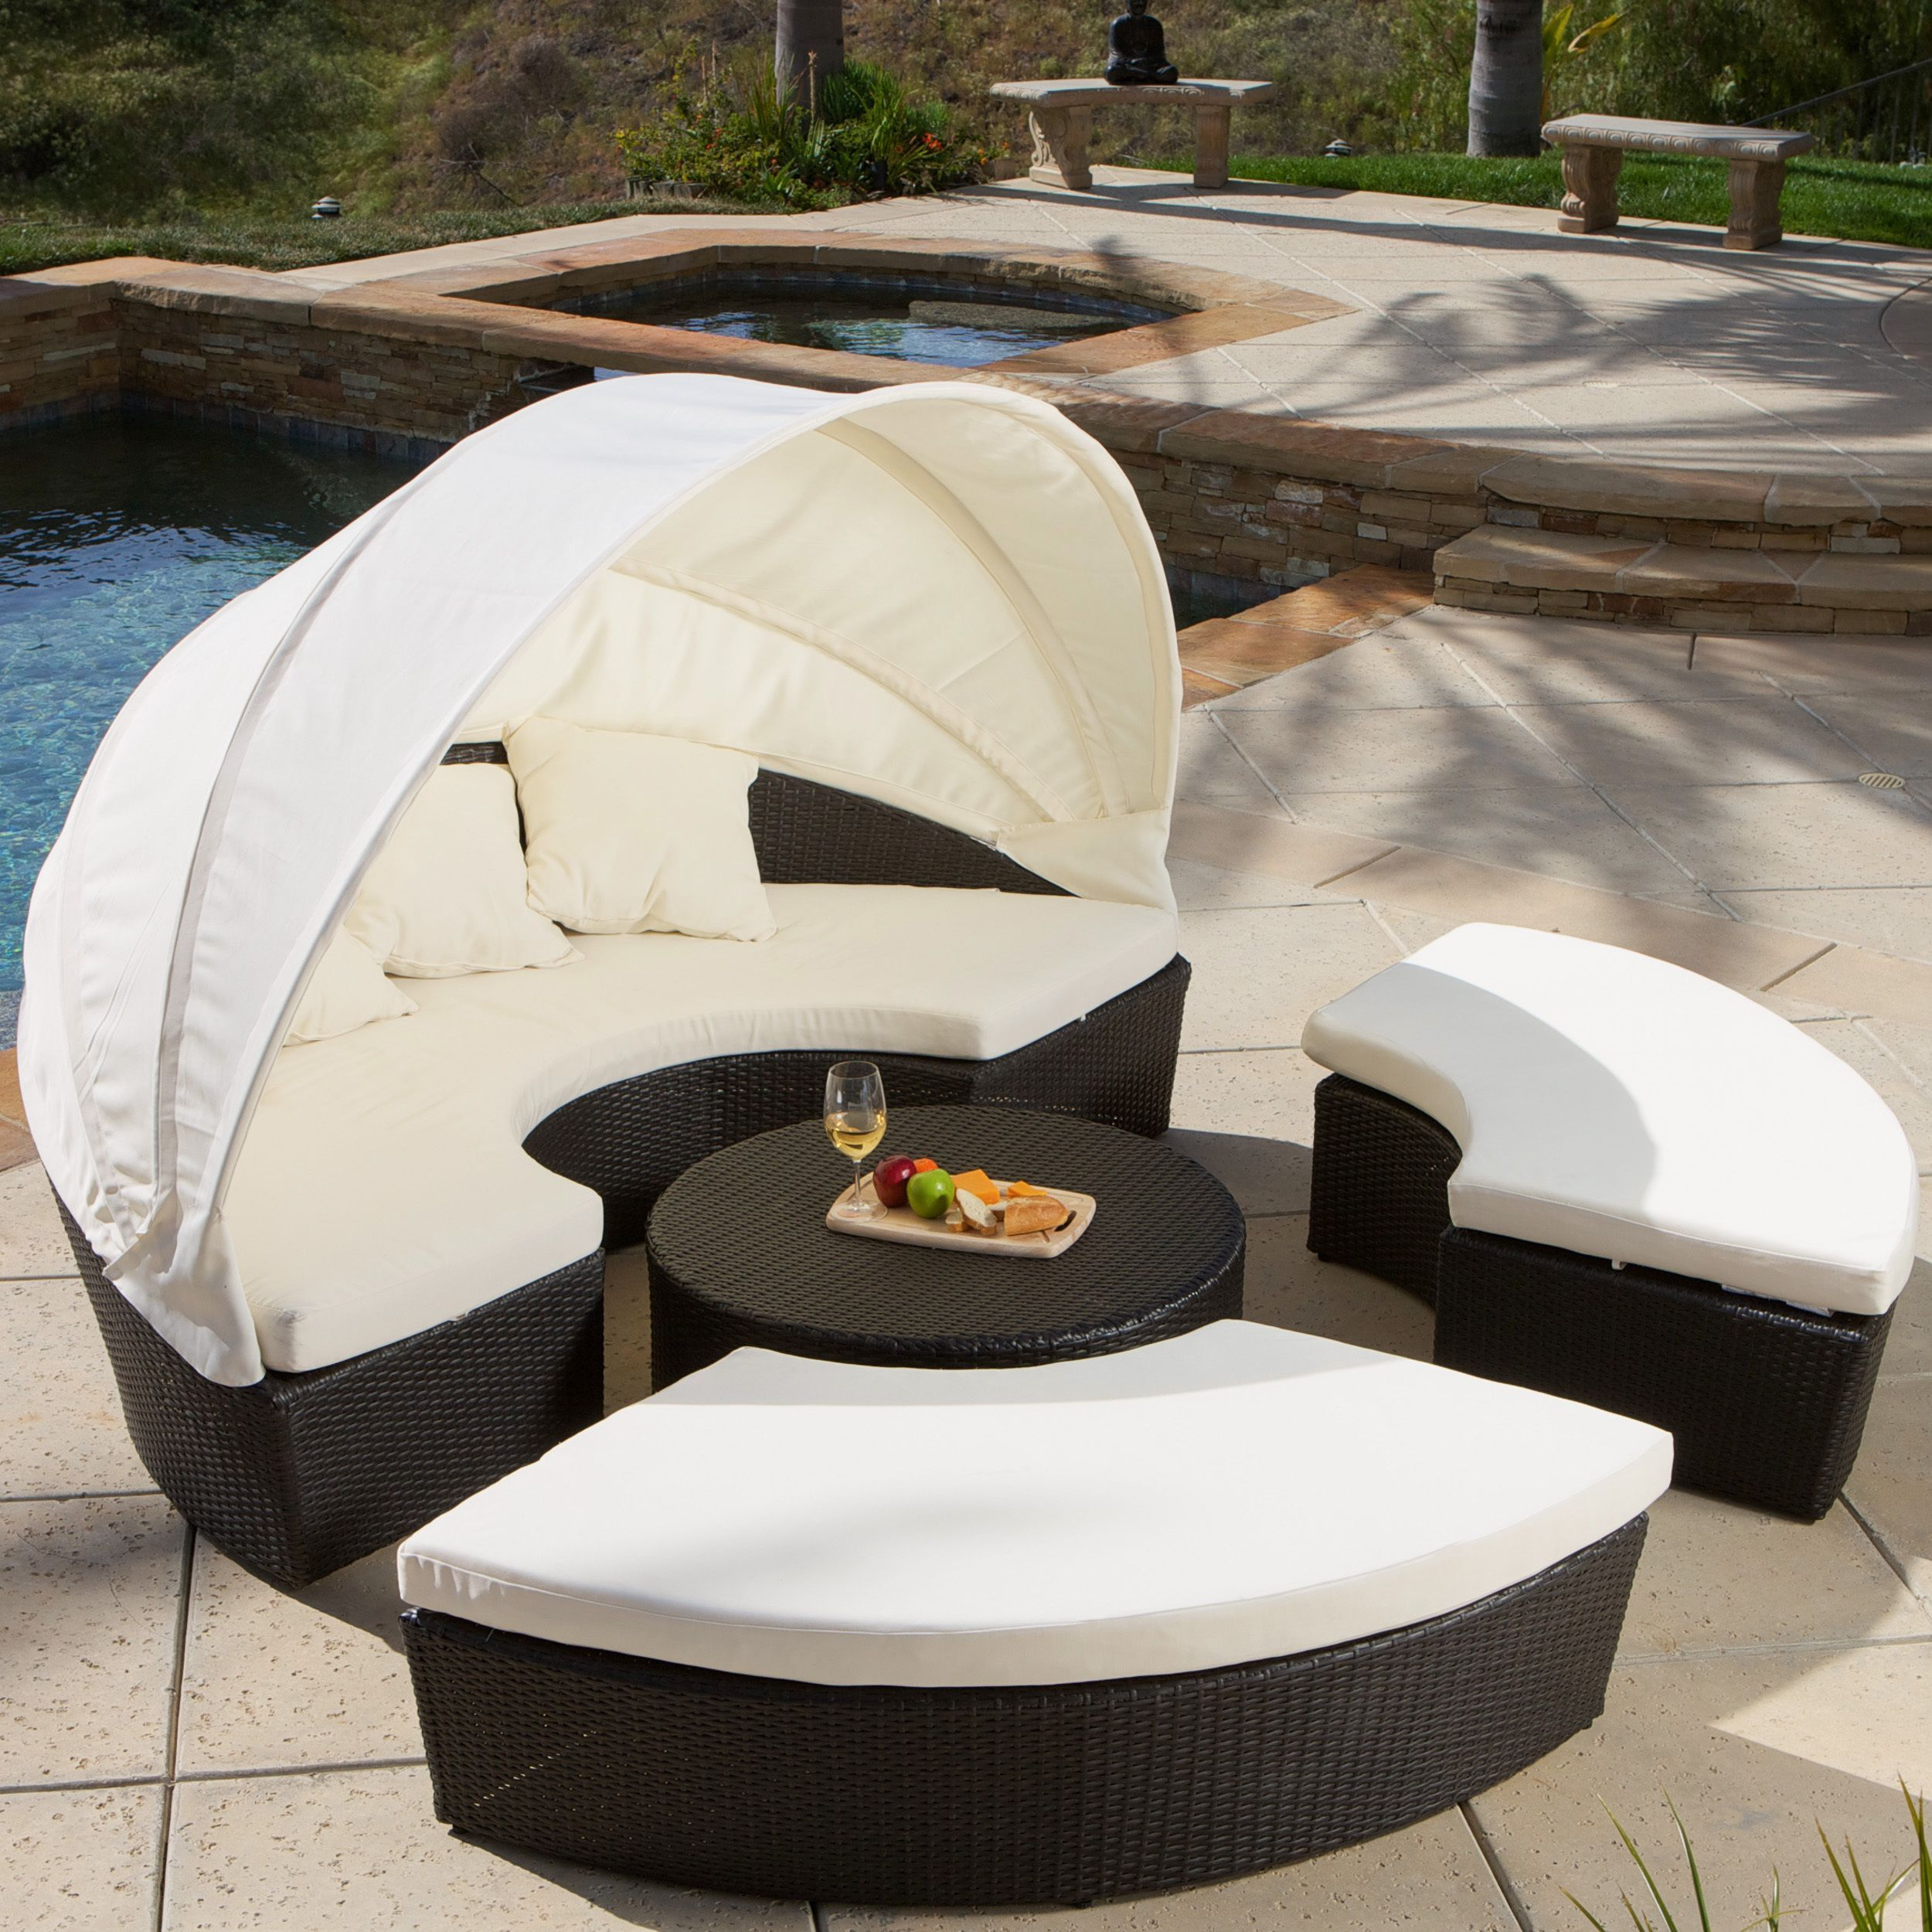 Christopher Knight Home La Mesa Cabana/ Canopy Set - Overstock™ Shopping - Big Discounts on Christopher Knight Home Sofas Chairs u0026 Sectionals & This four-piece La Mesa Cabana and canopy set gives you a shady ...